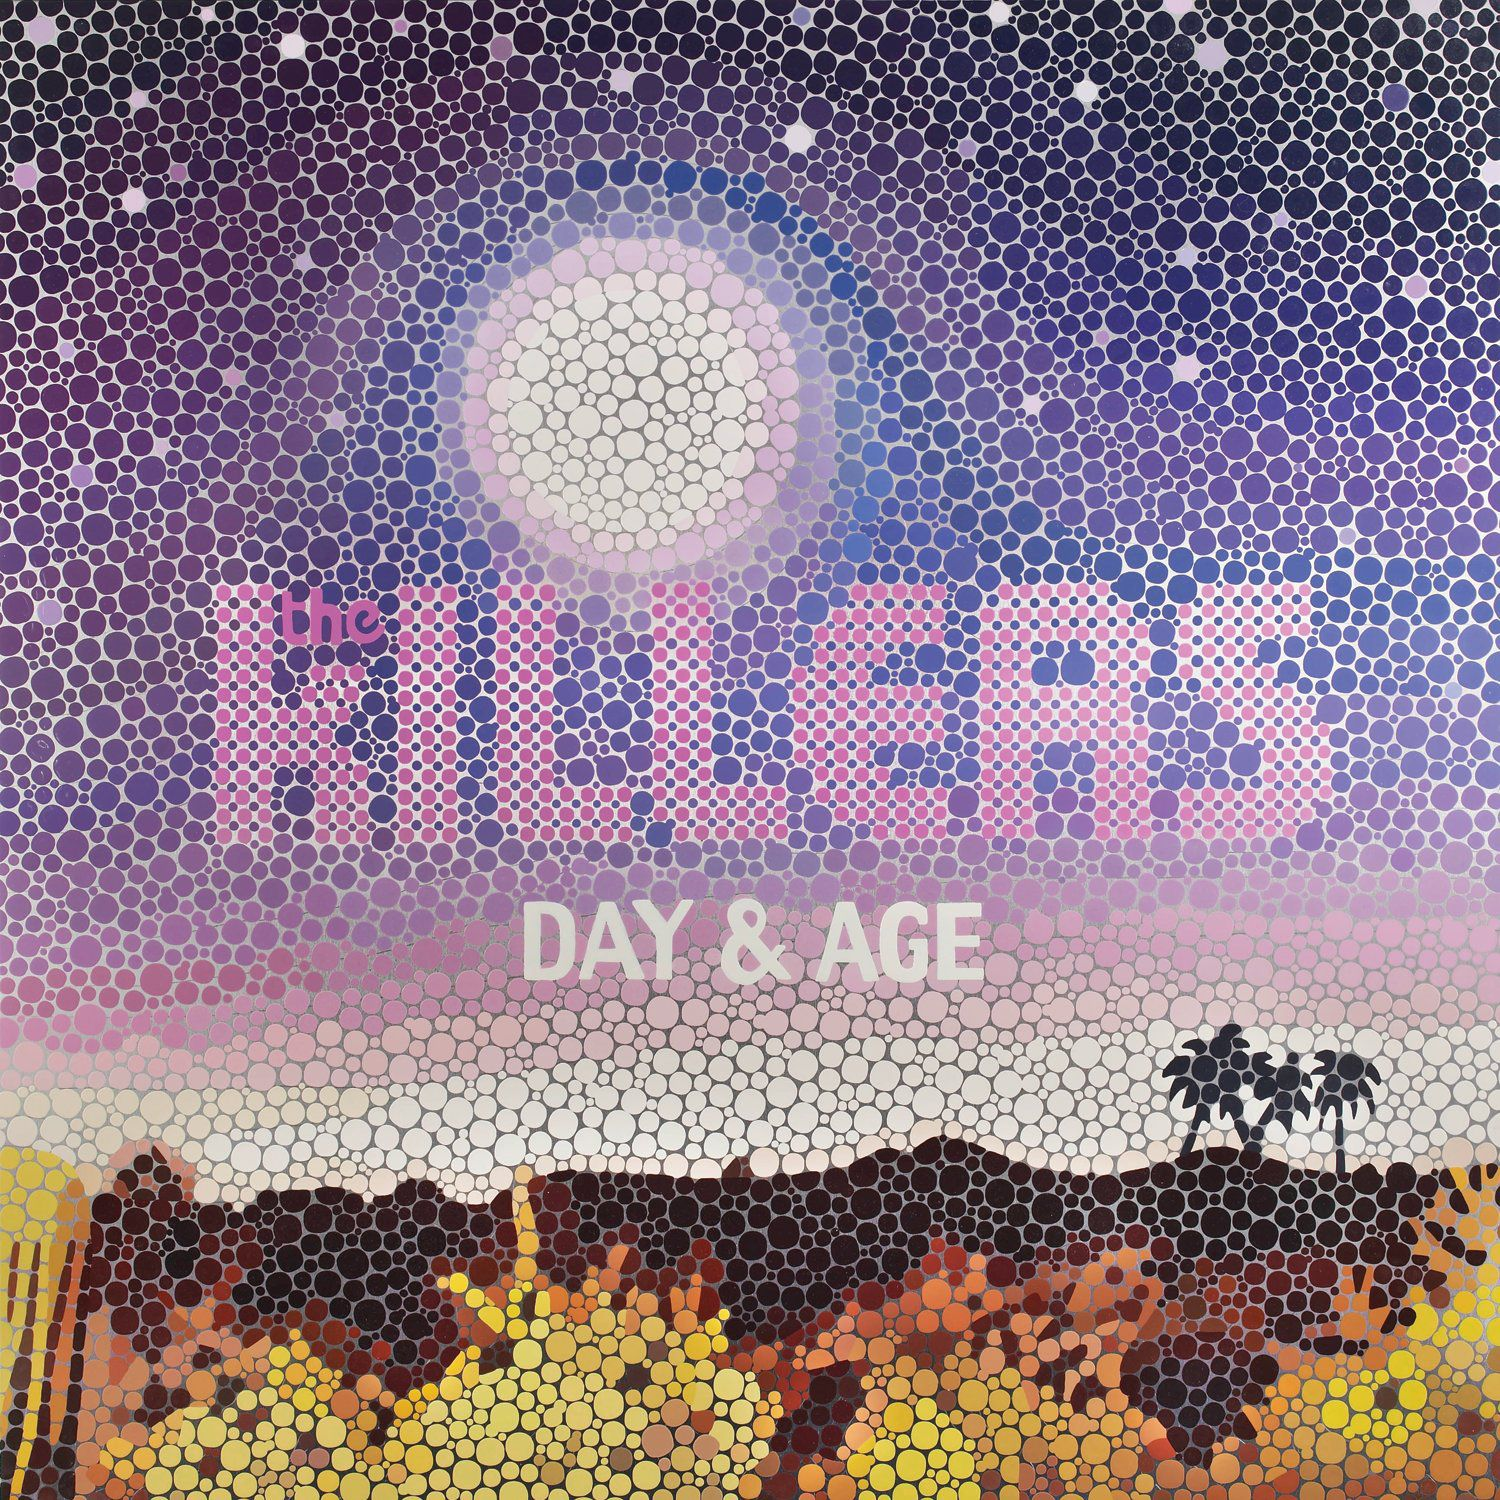 The Killers - Day & Age album cover